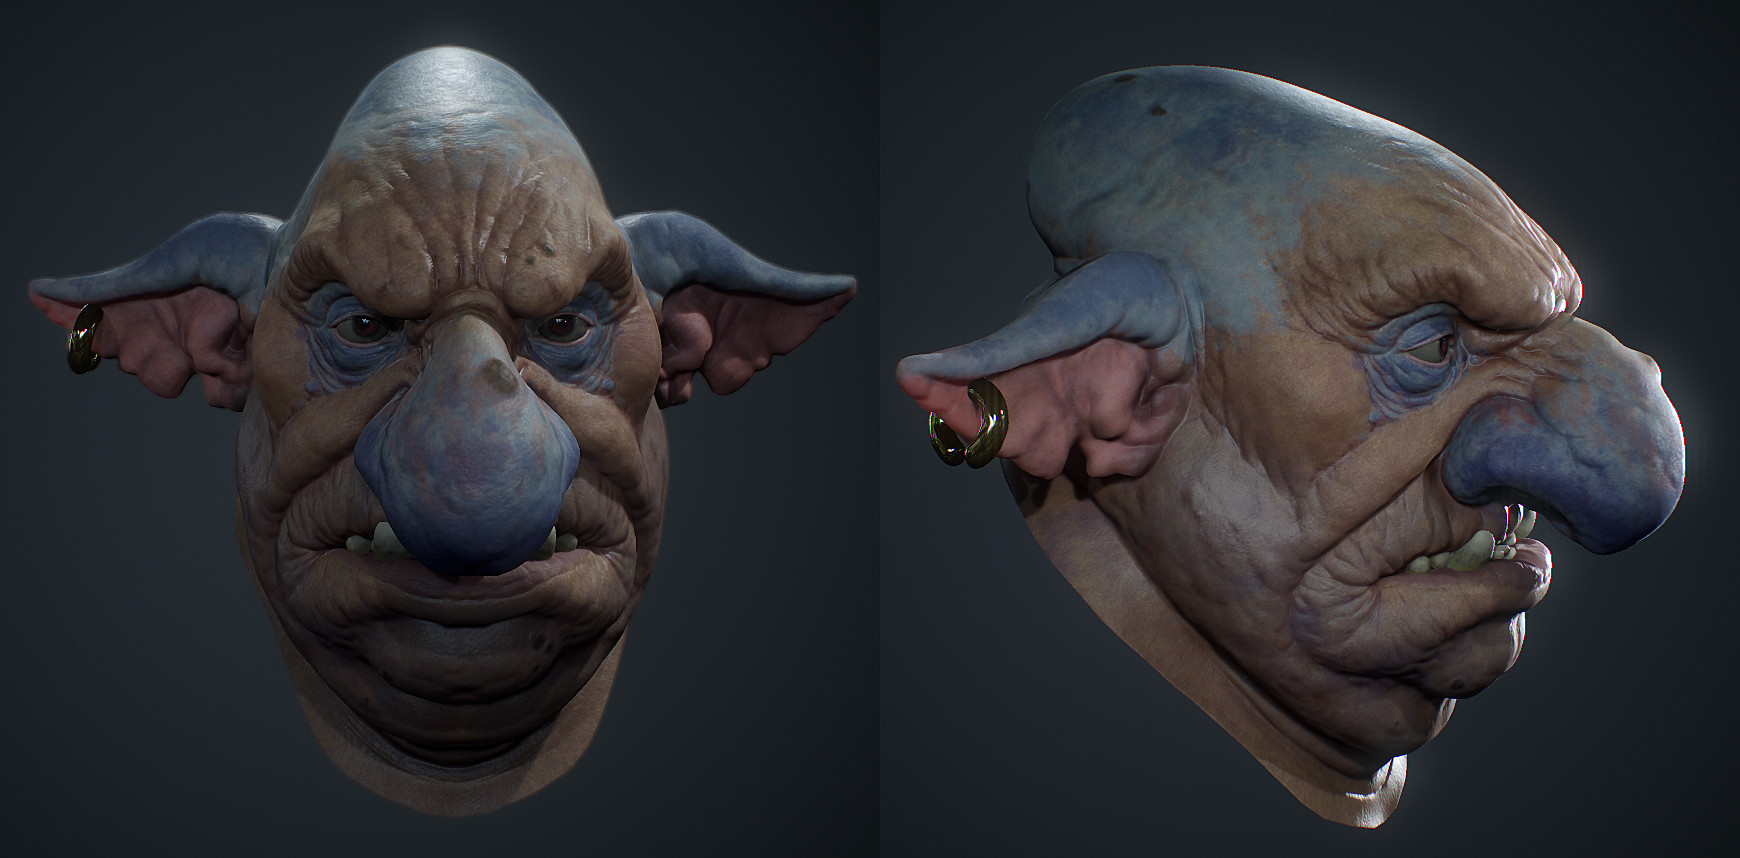 Further texturing in Substance and Marmoset Toolbag 3.